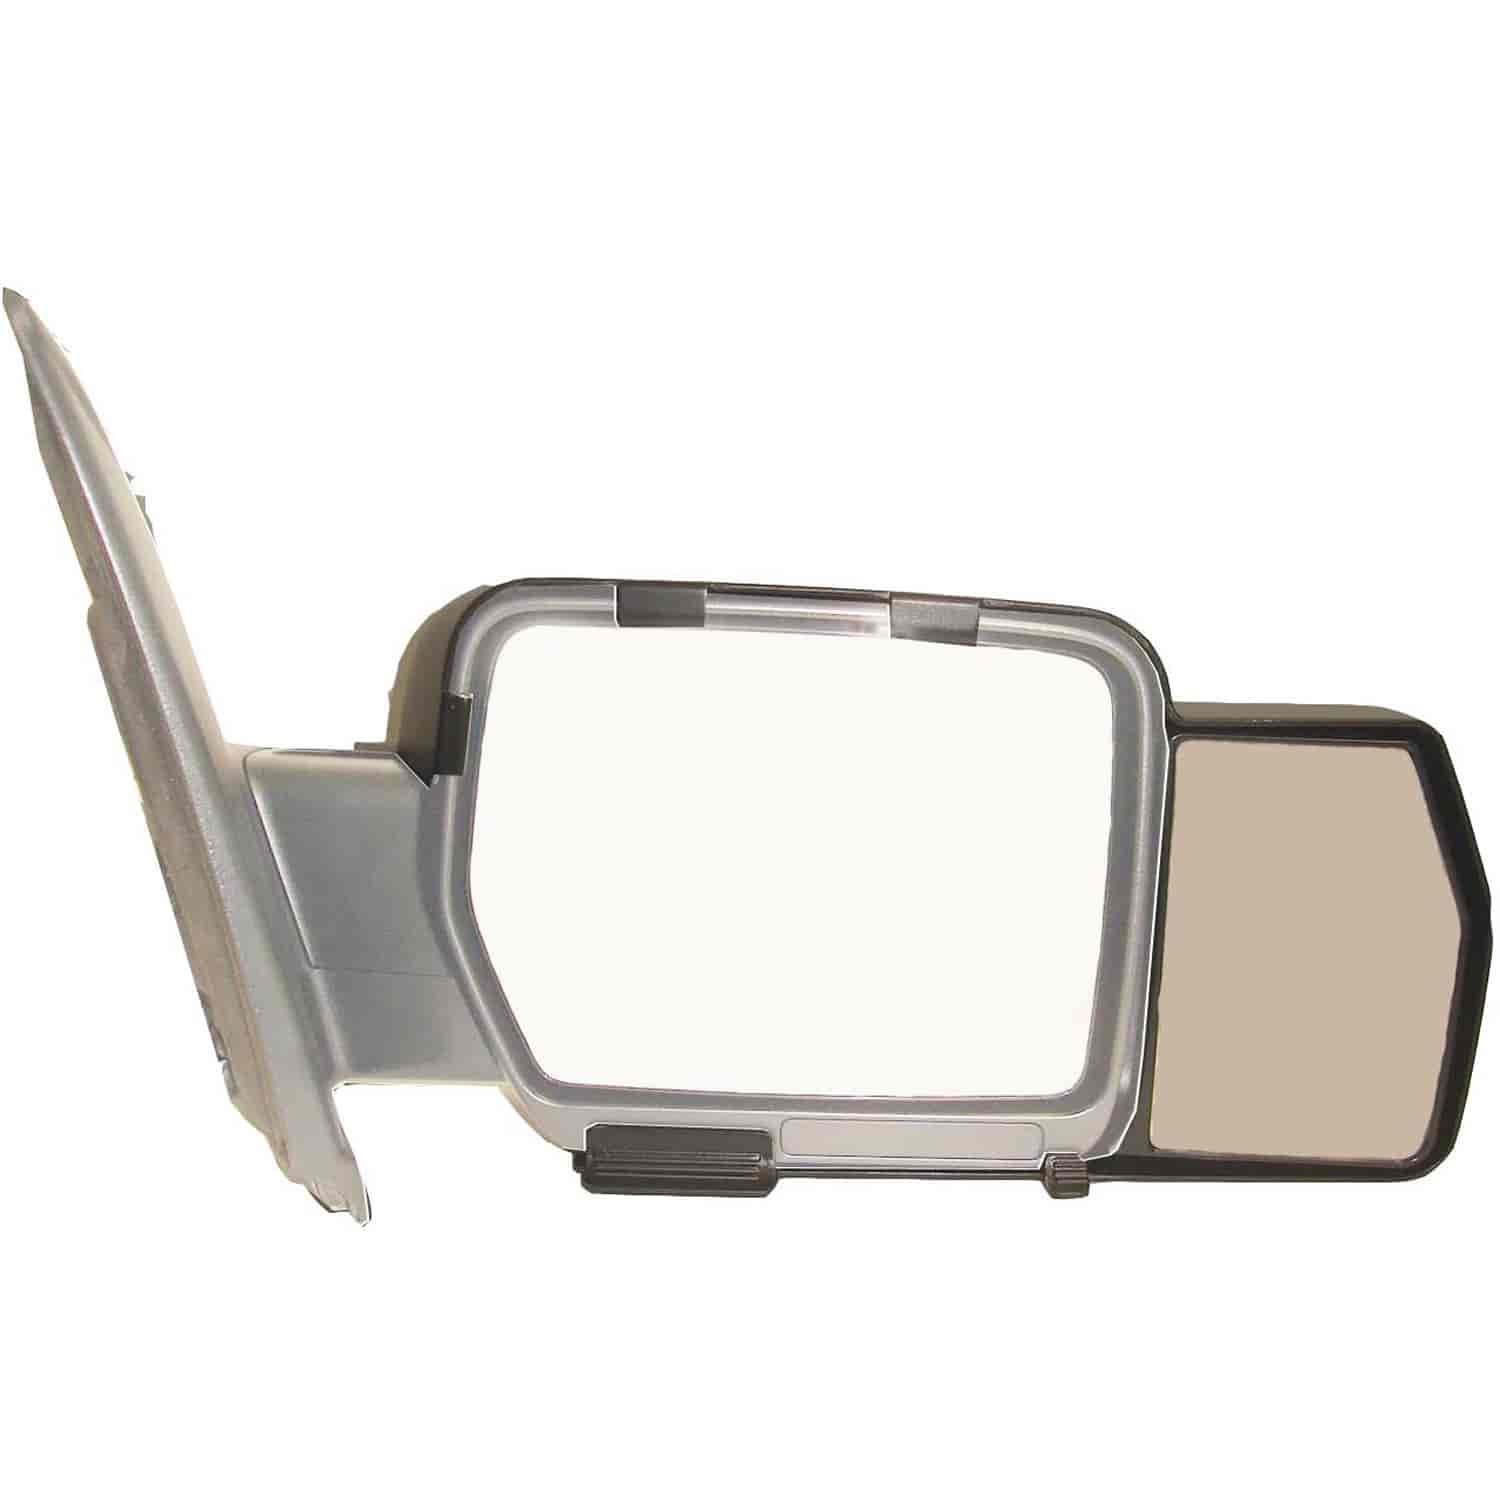 K Source  Snap On Towing Mirrors Fits  Ford F Jegs